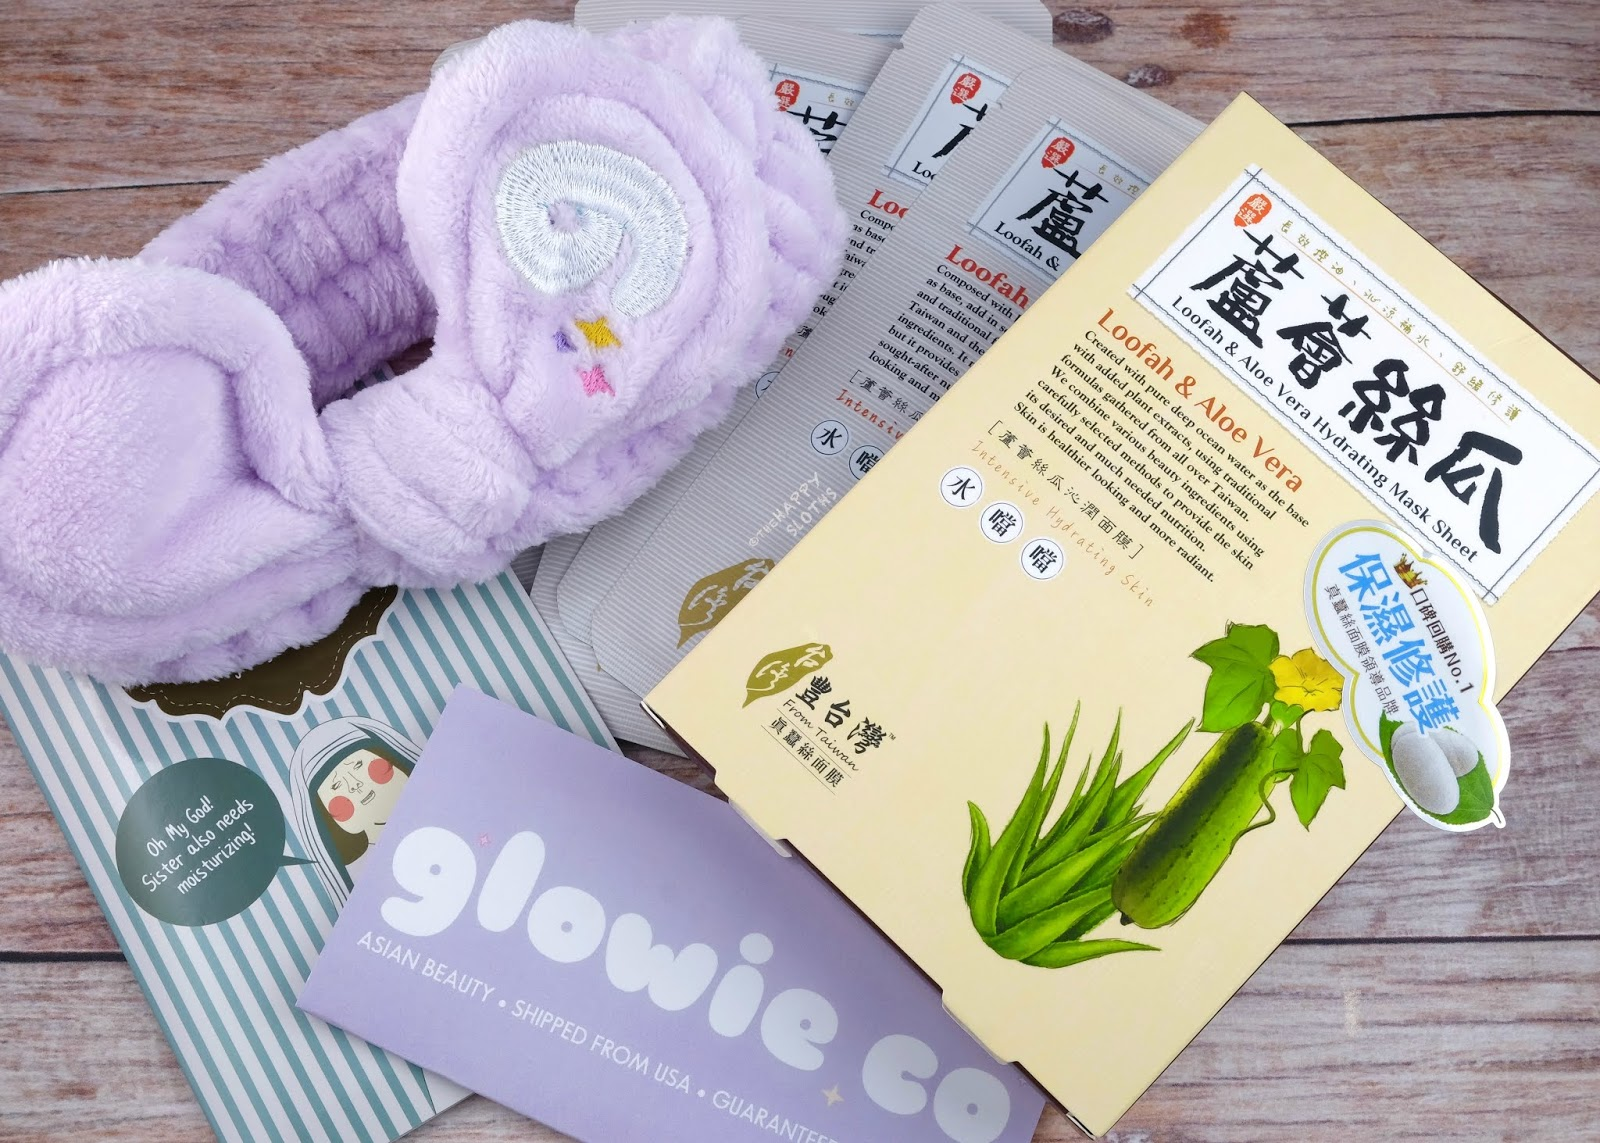 Glowie Co | Bunny Ear Headband & LoveMore Loofah & Aloe Vera Hydrating Sheet Mask